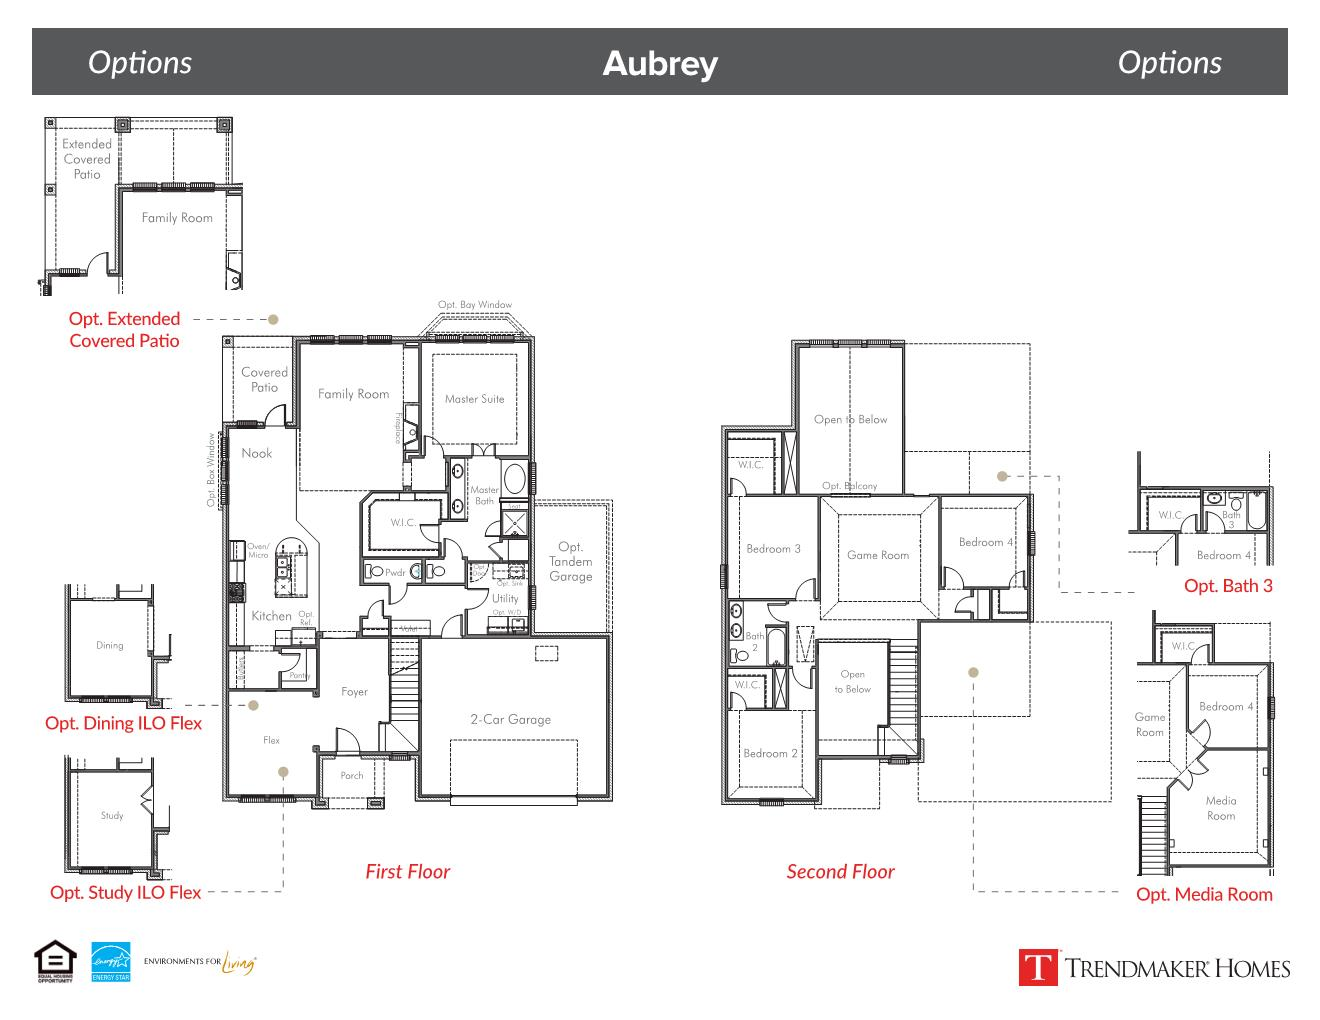 Aubrey Floor Plan - Vineyards